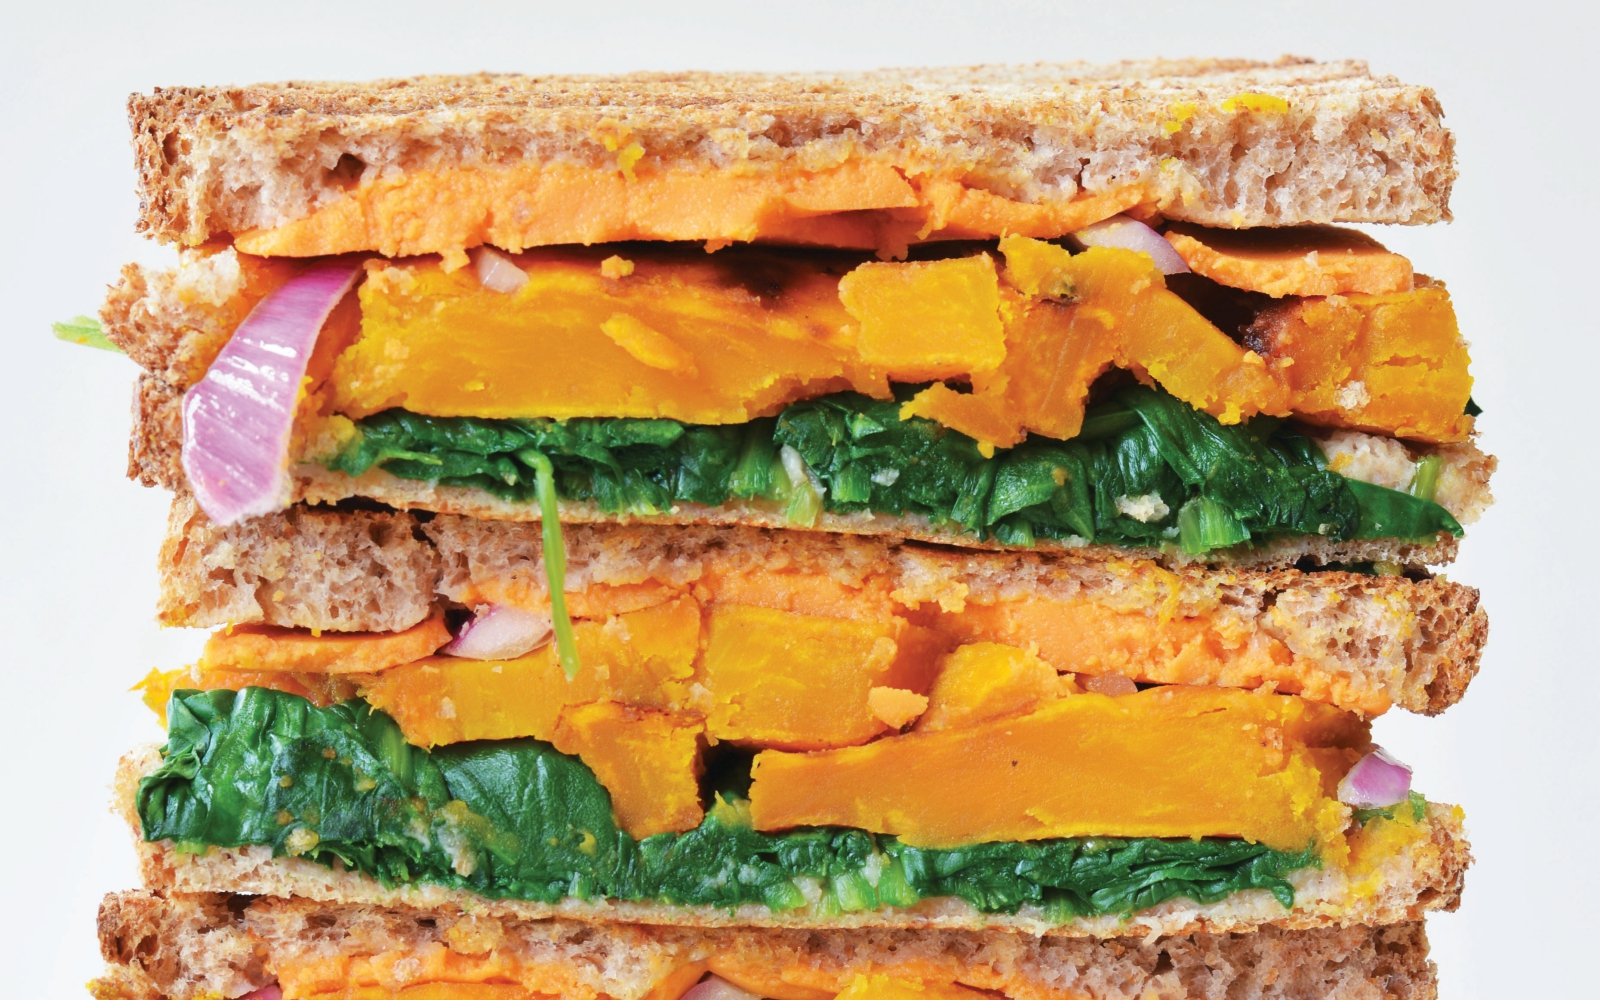 Vegan Maple-Mustard Squash Grilled Cheese with greens and onion